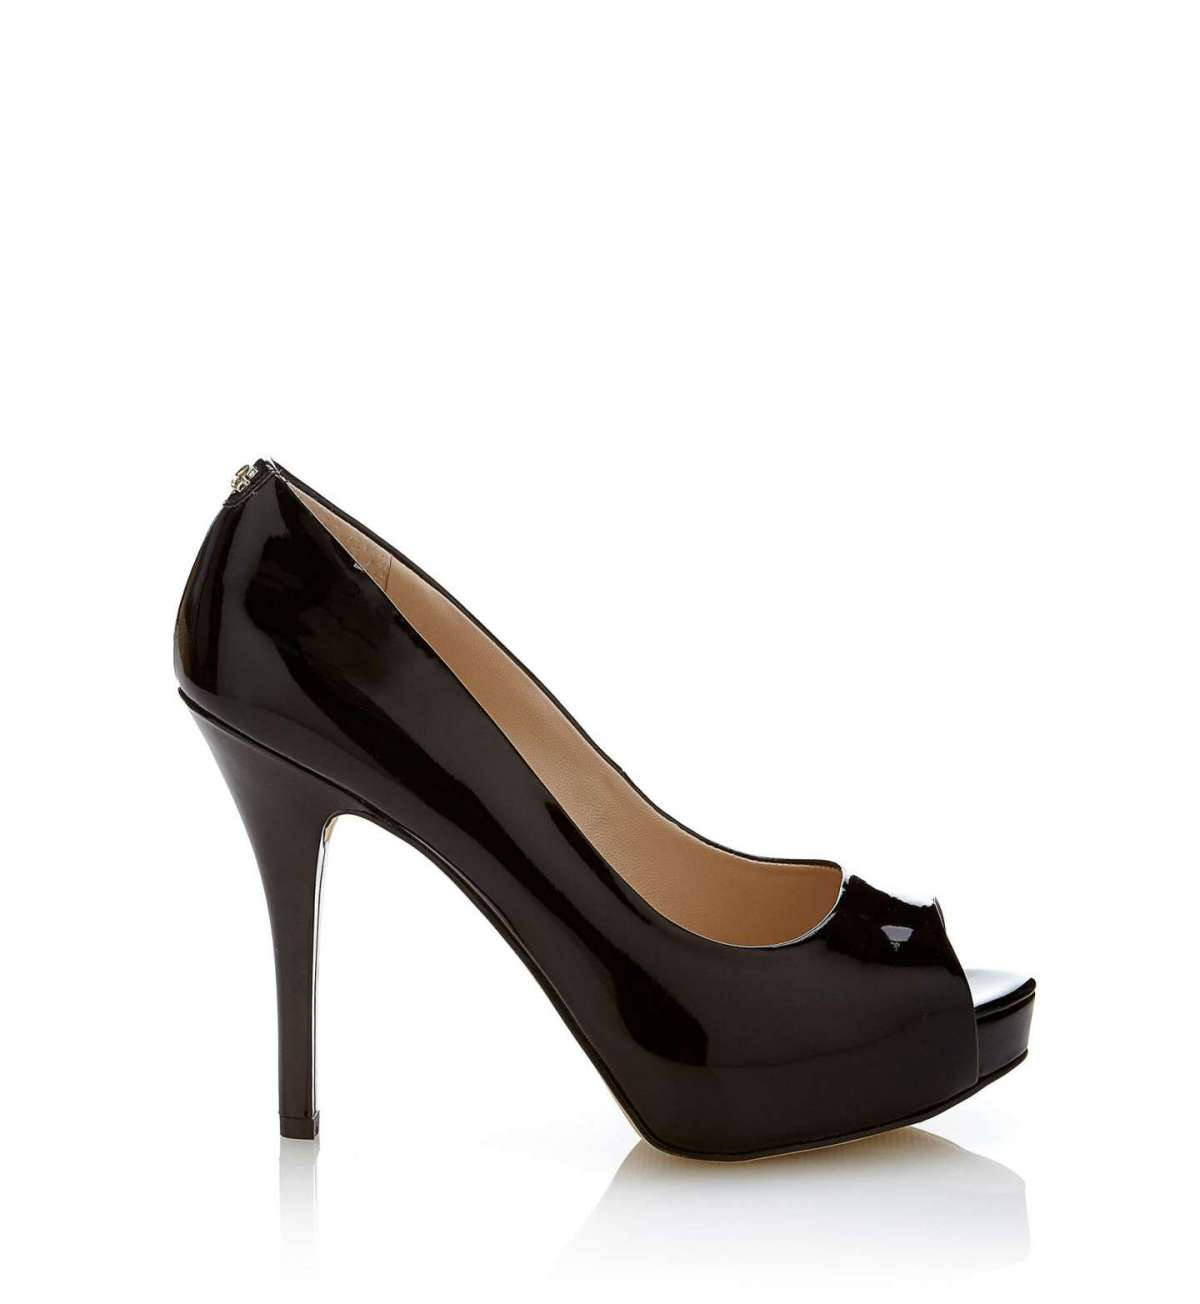 Peep Toe Nere Guess Autunno Inverno 2017